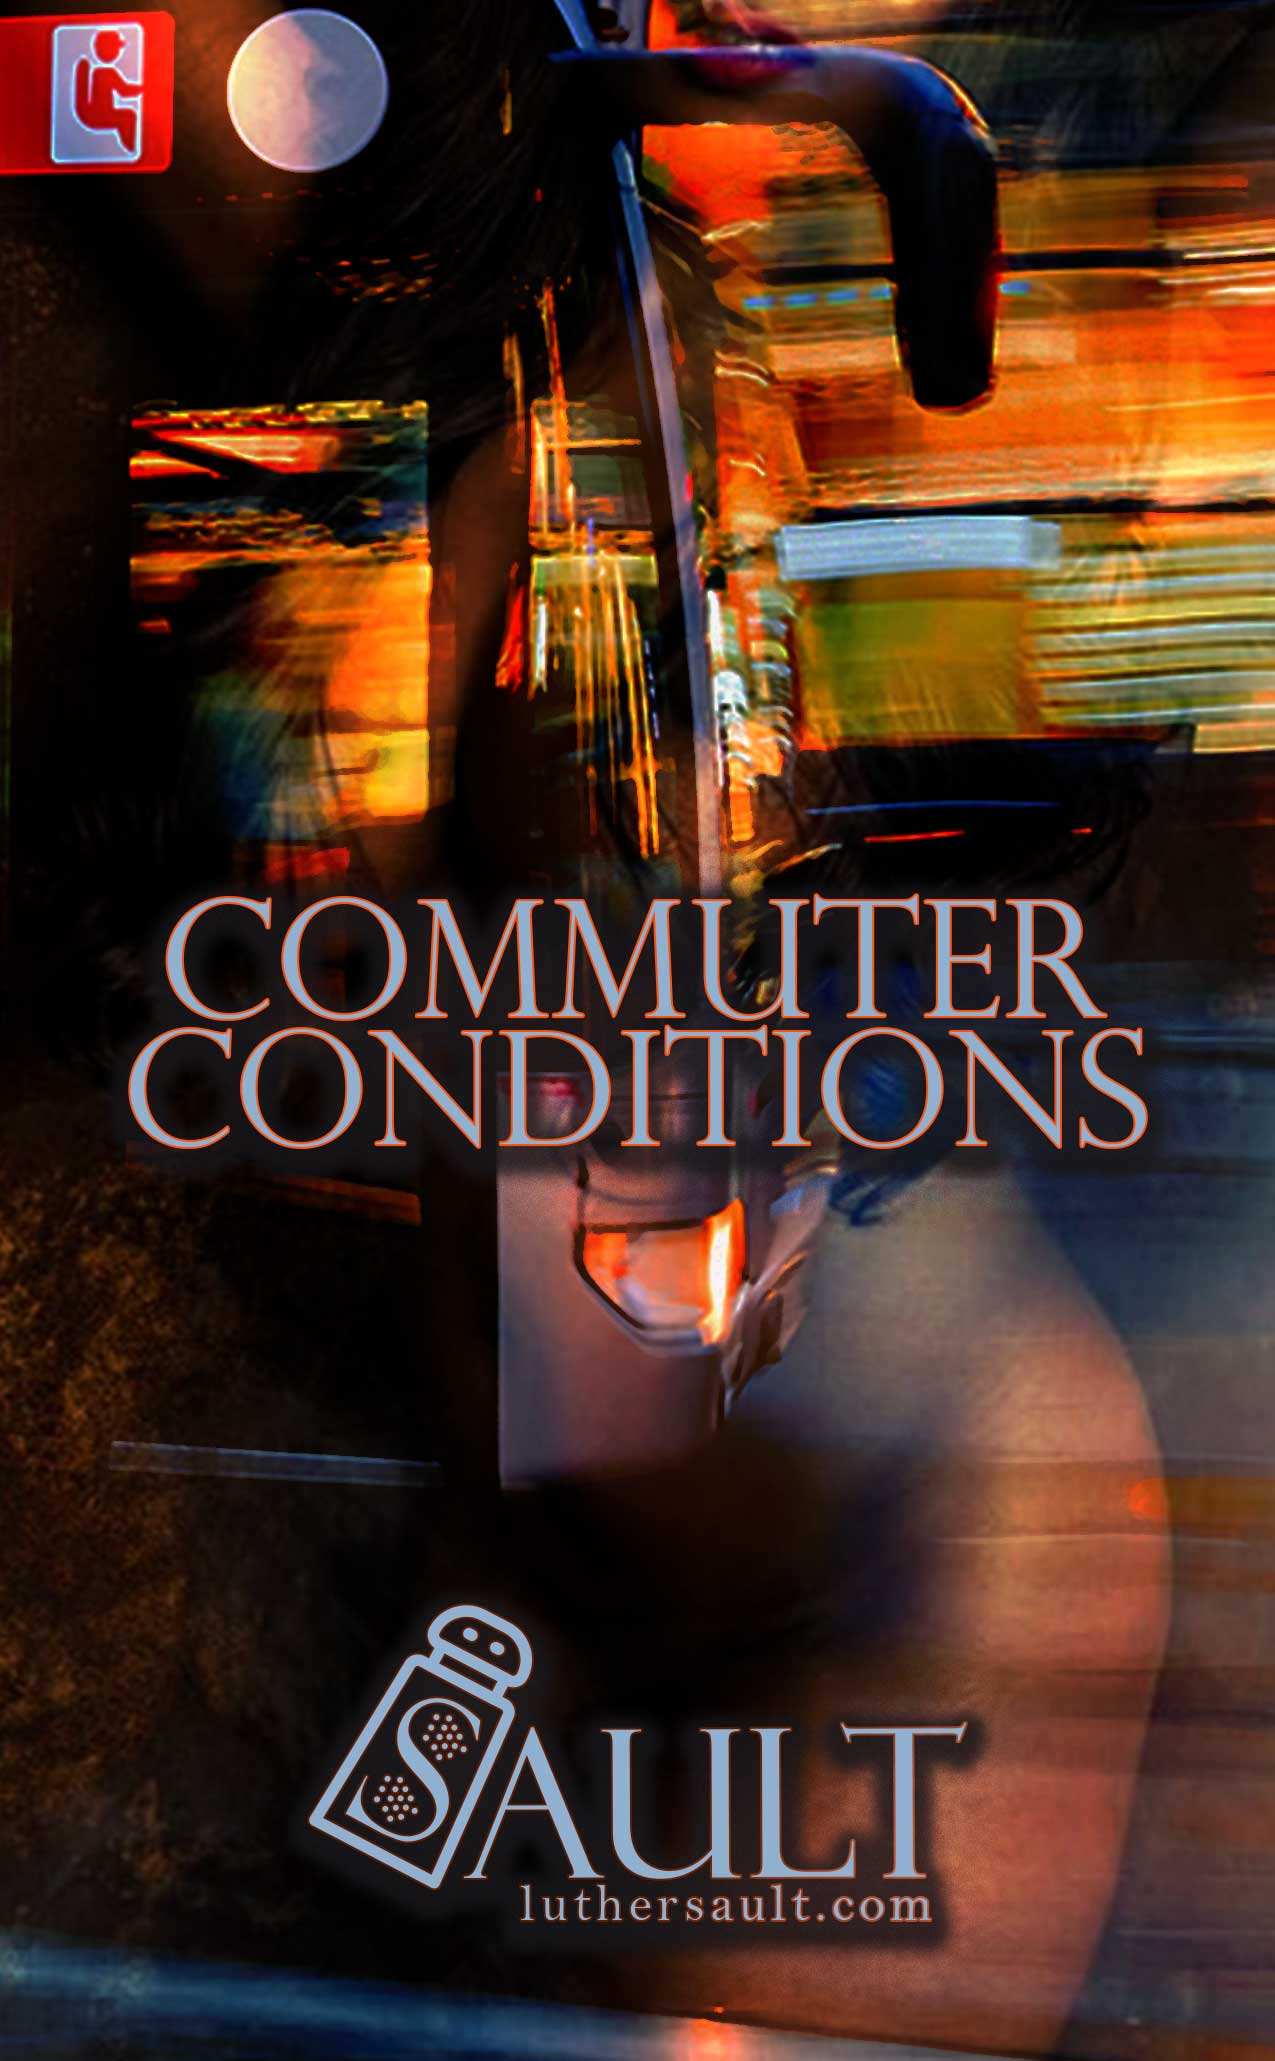 Commuter Conditions Story Cover